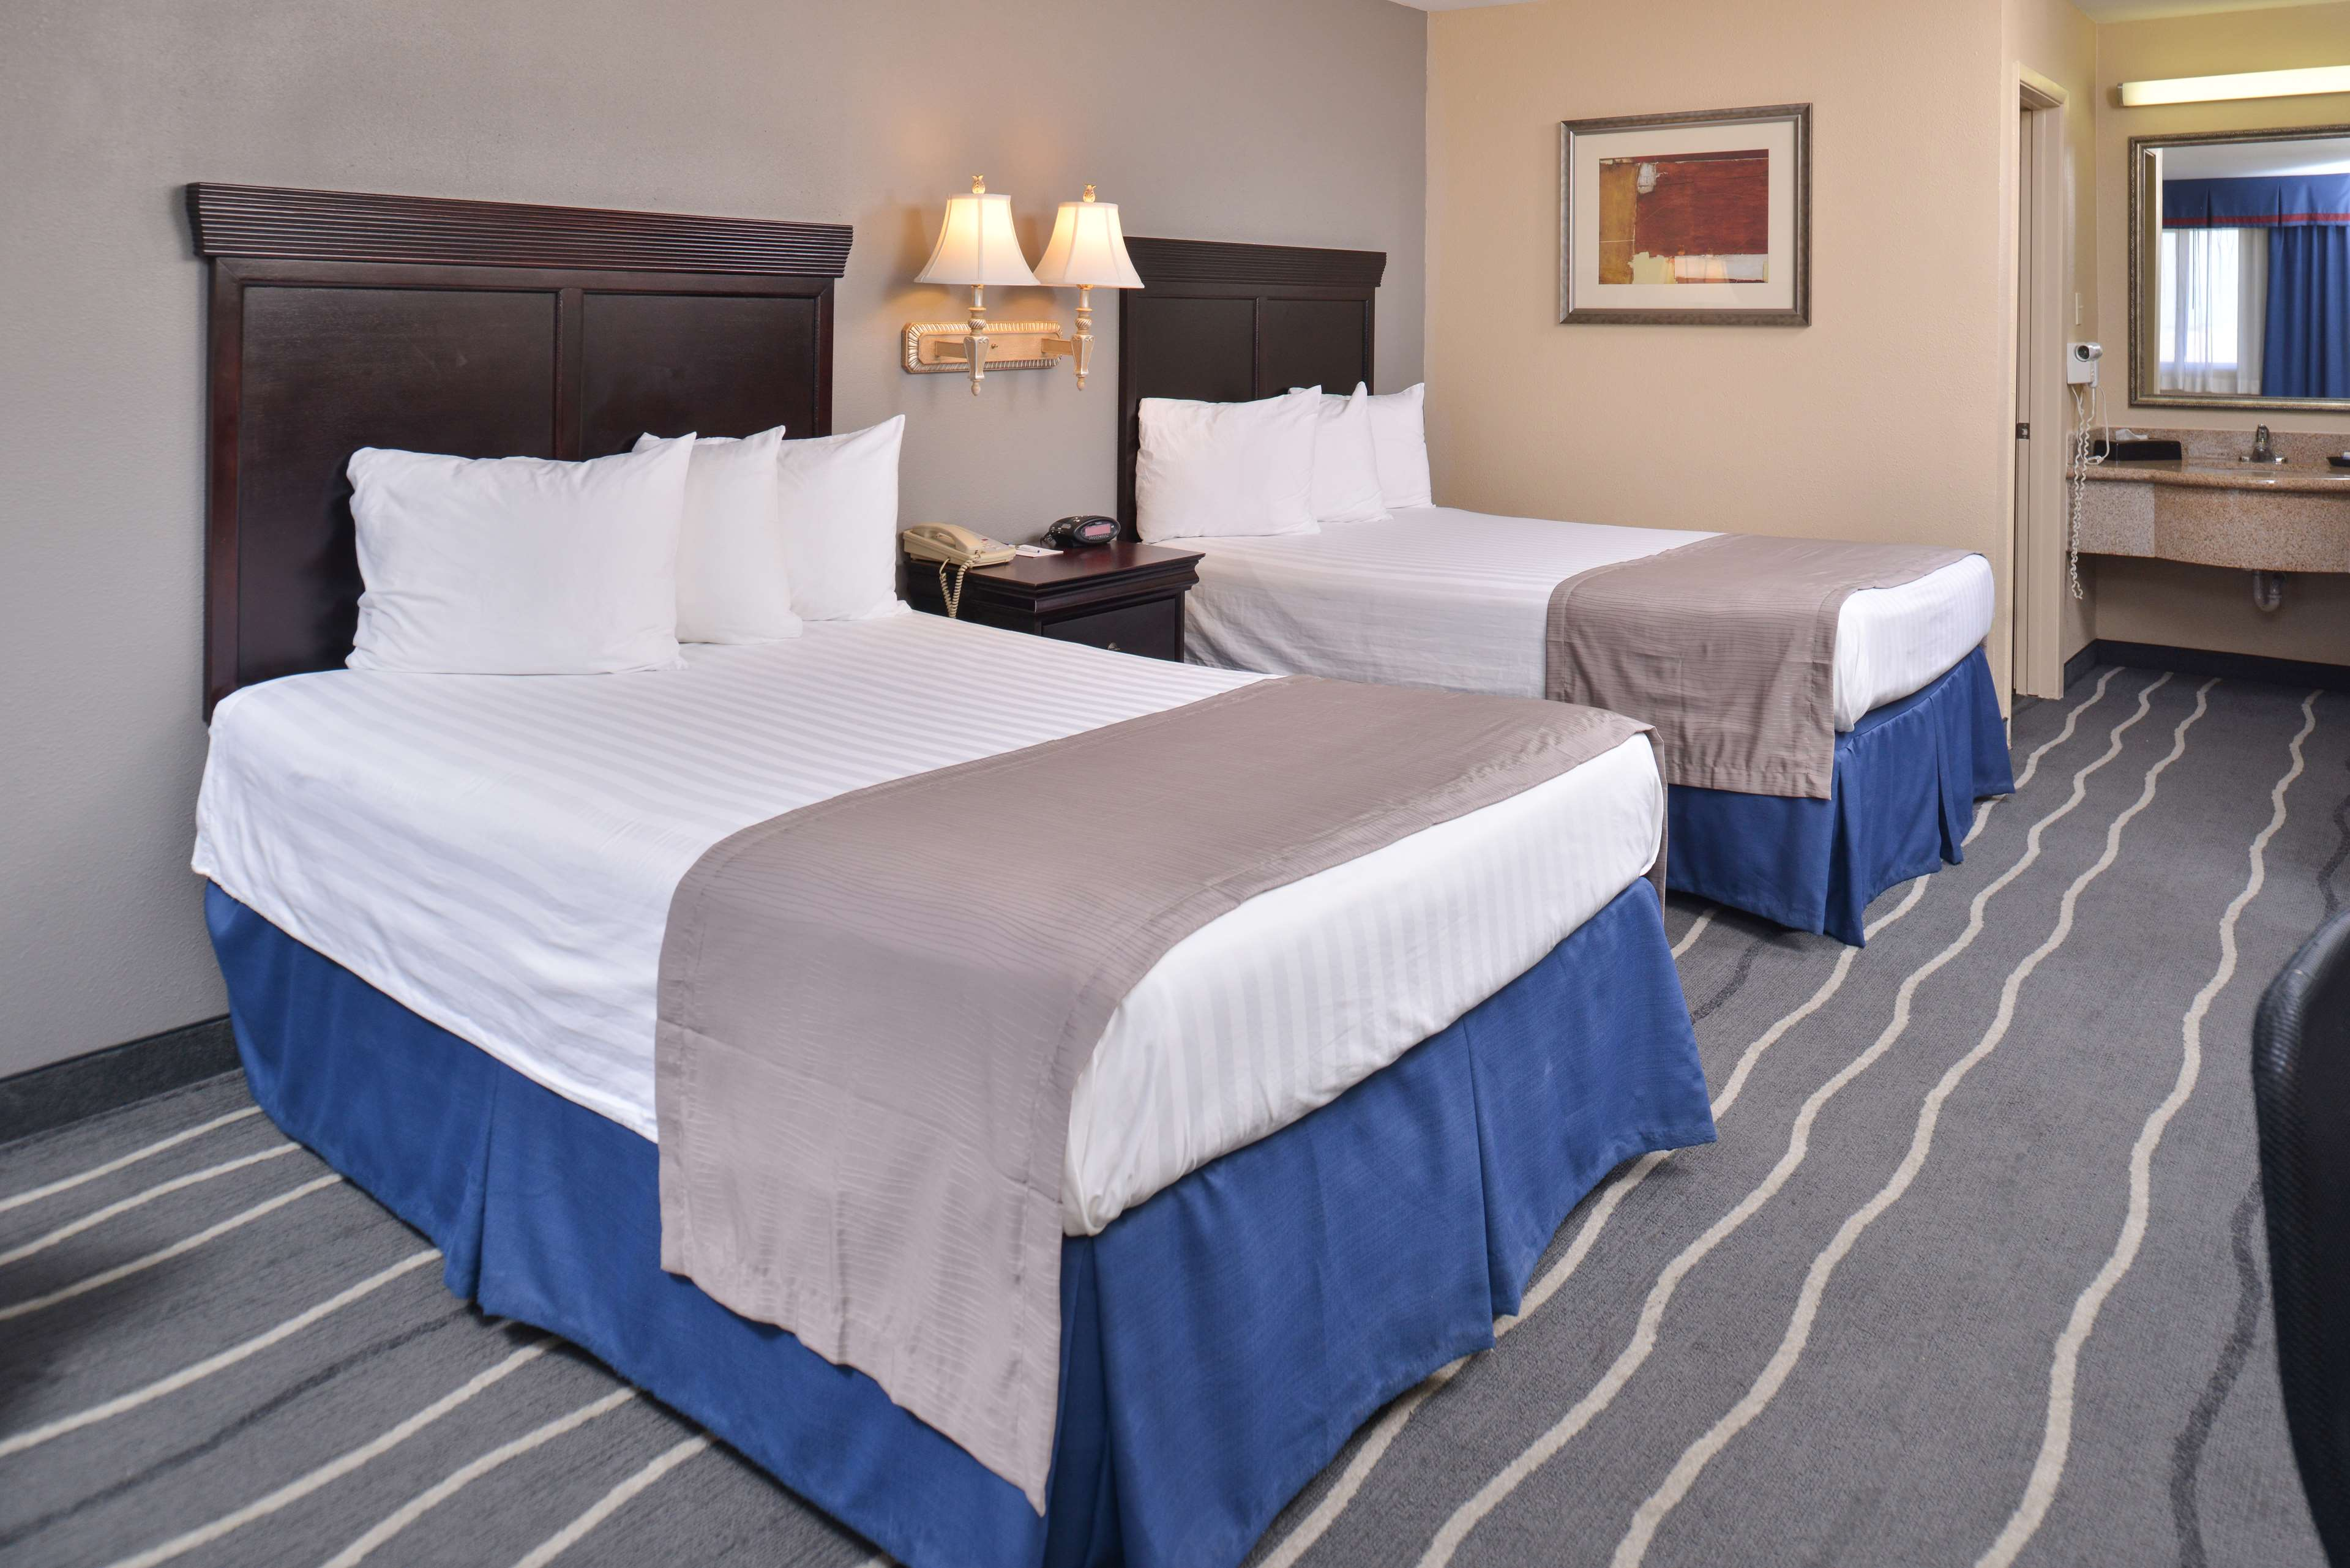 Best Western Irving Inn & Suites at DFW Airport image 12